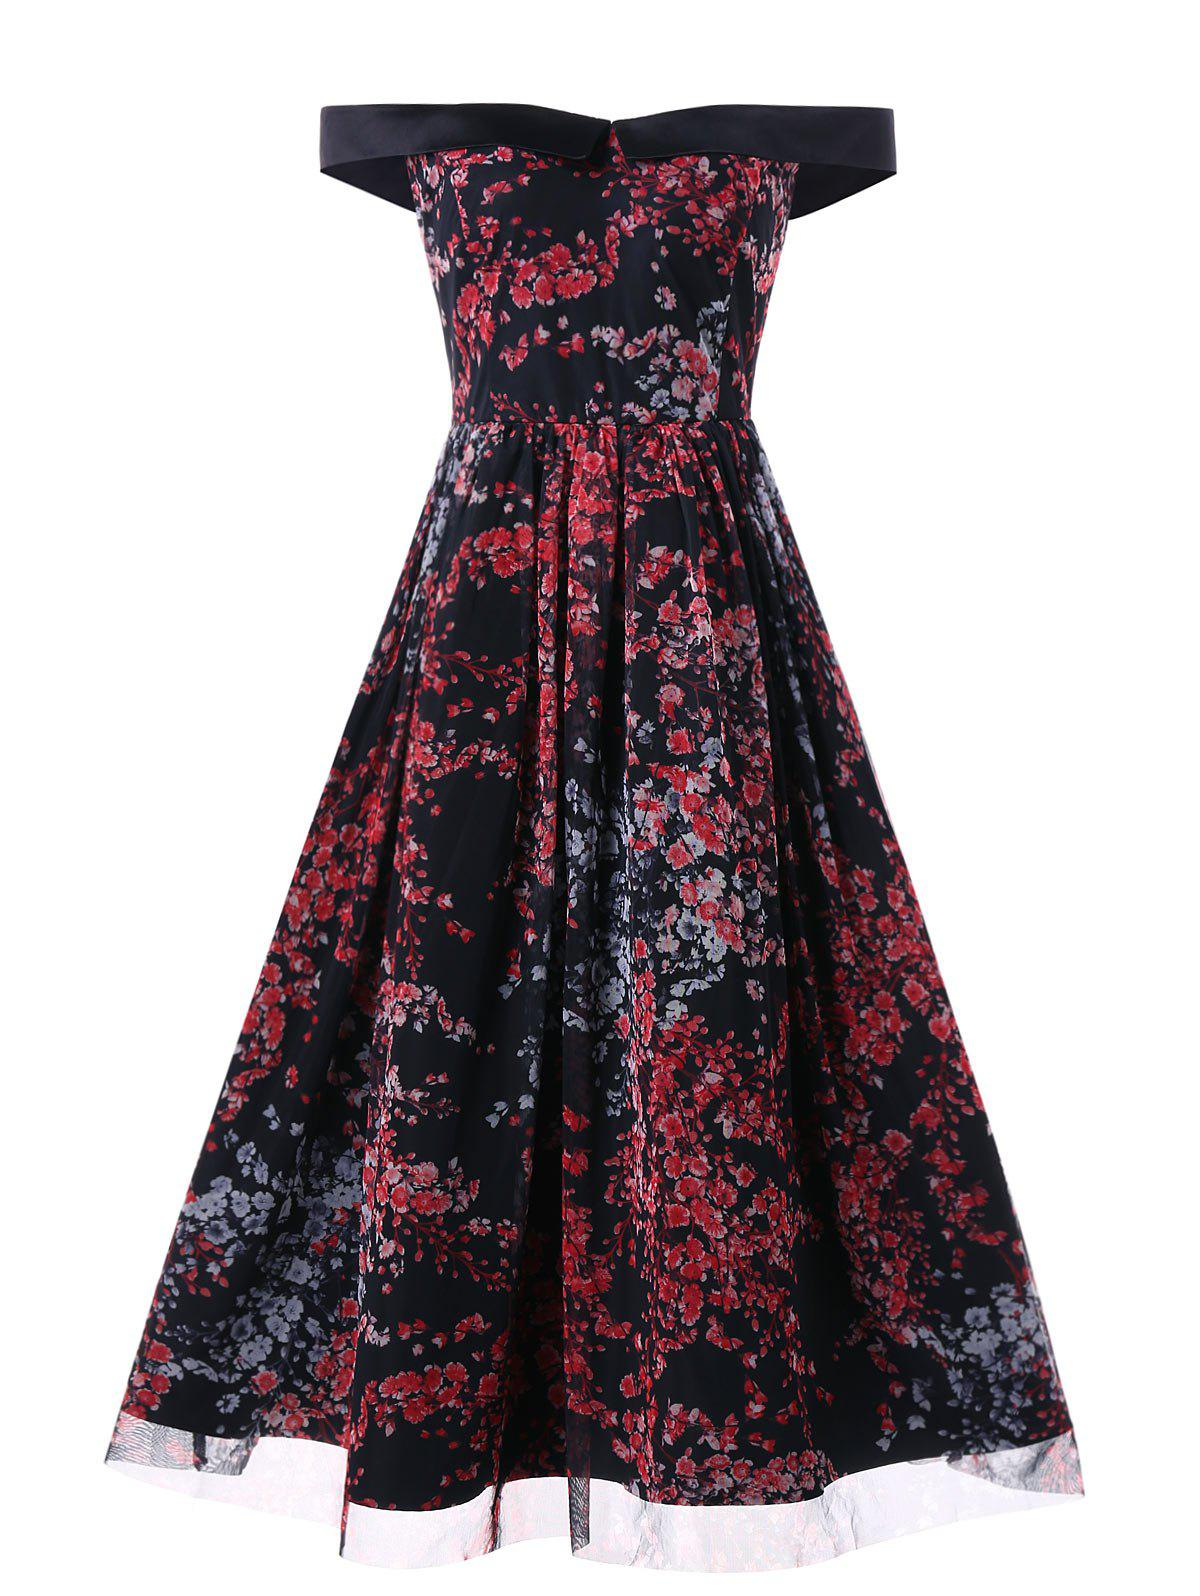 Fashion Mesh Insert Floral Print Vintage Dress